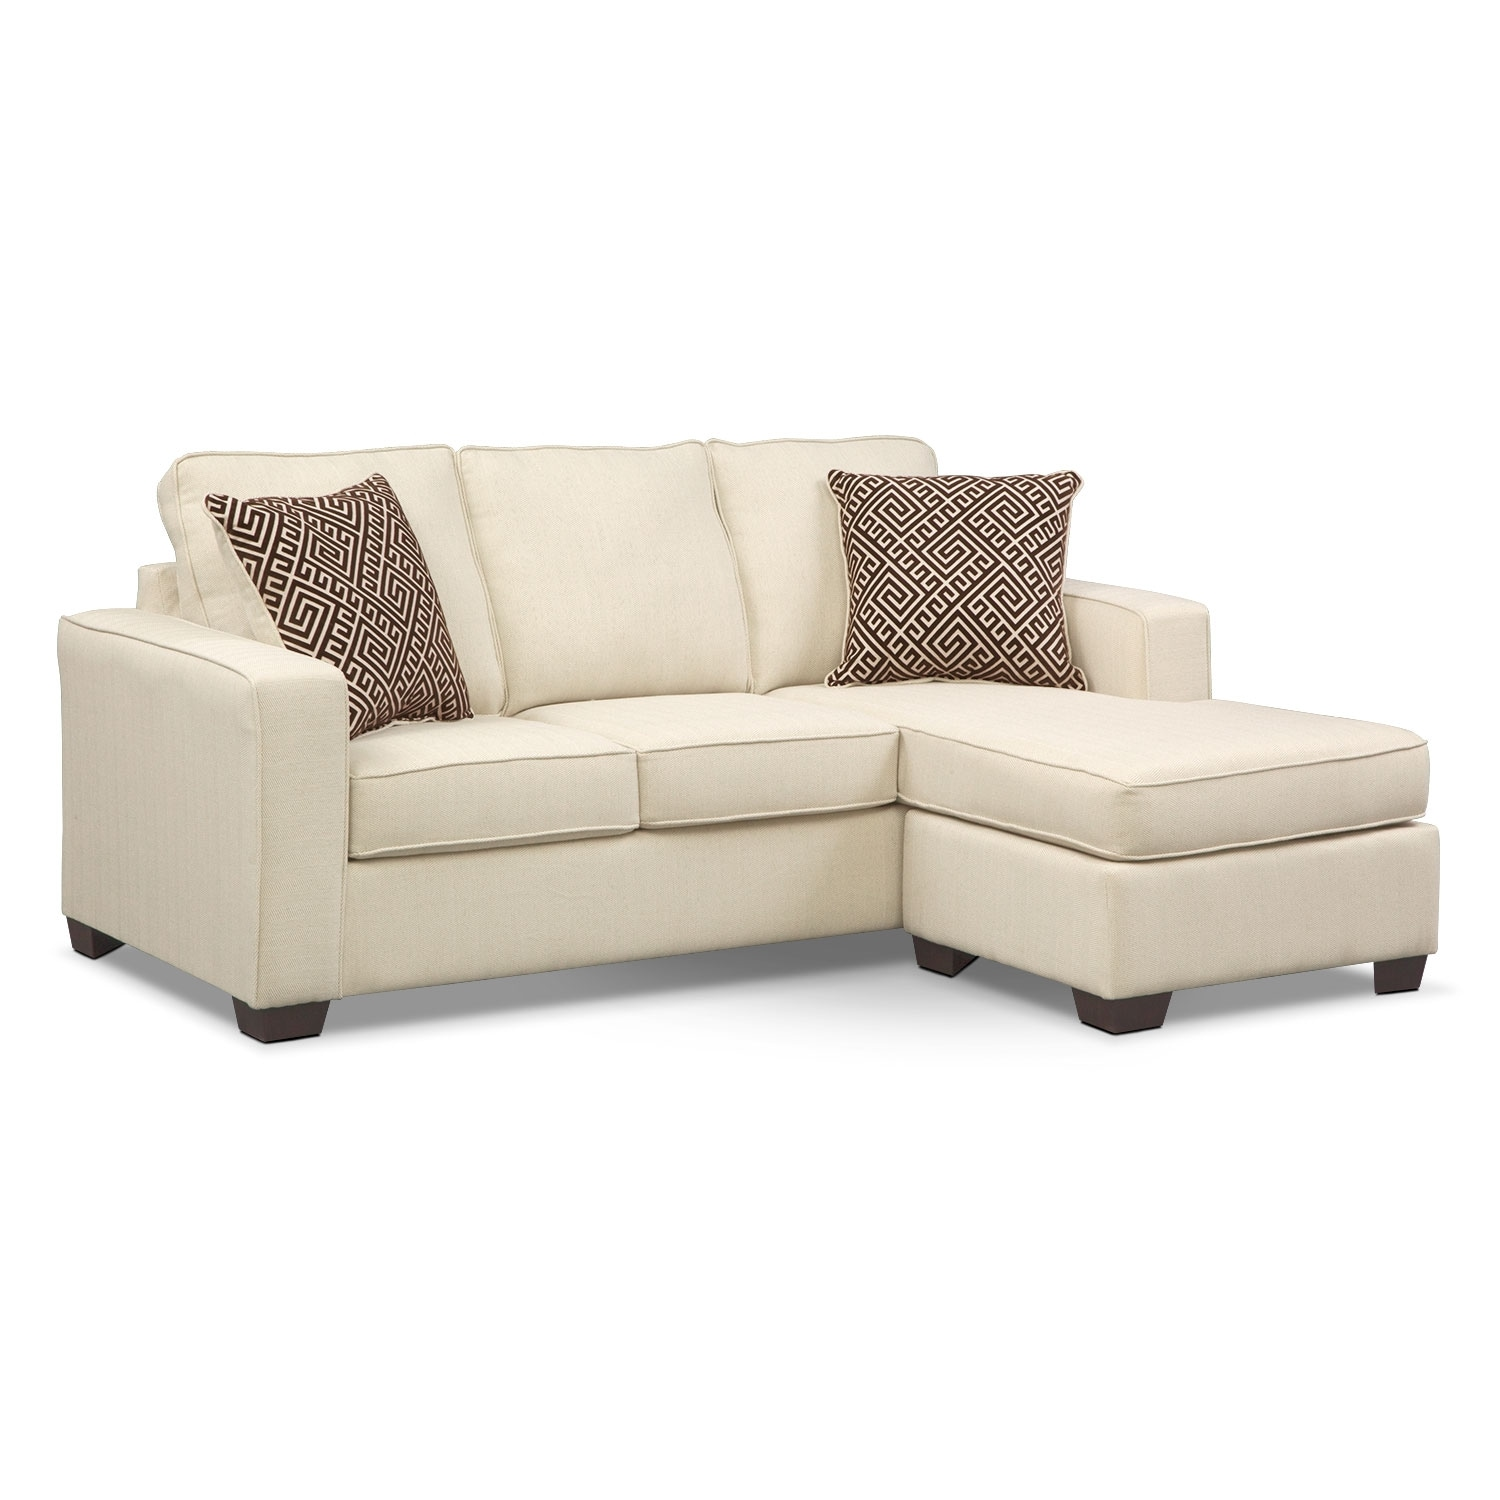 Sterling Memory Foam Sleeper Sofa With Chaise